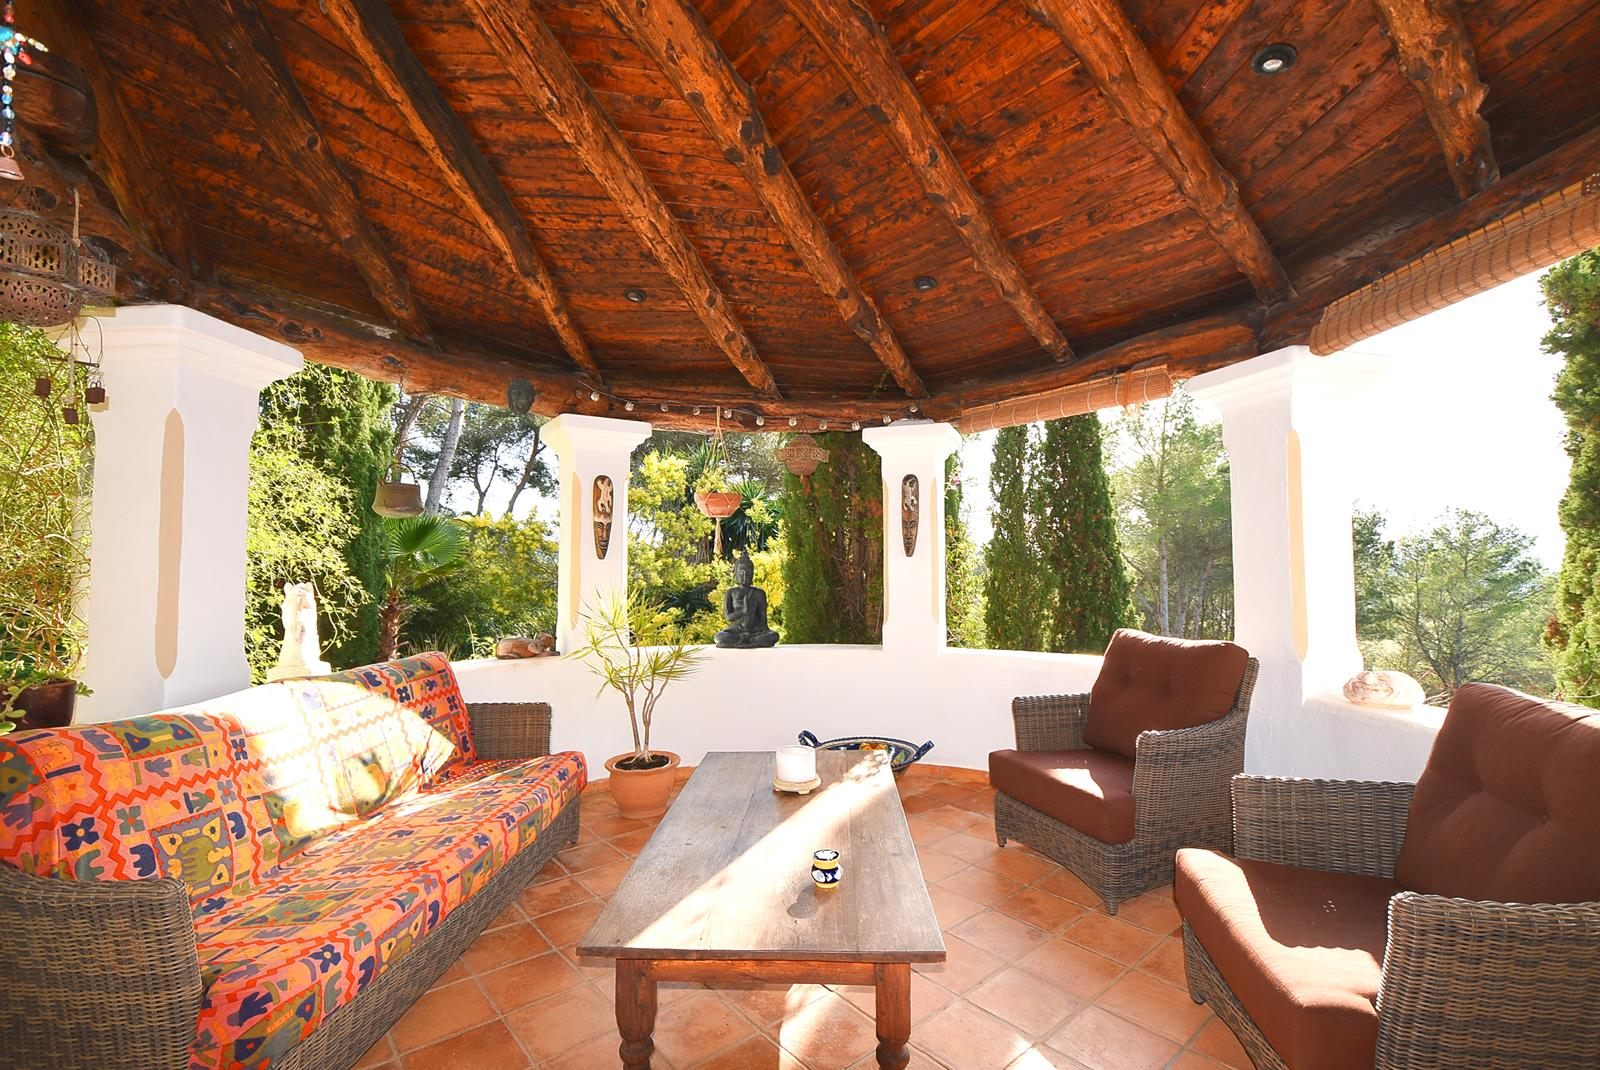 Very fine villa spanish finca type with an idyllic garden close to Atzaro